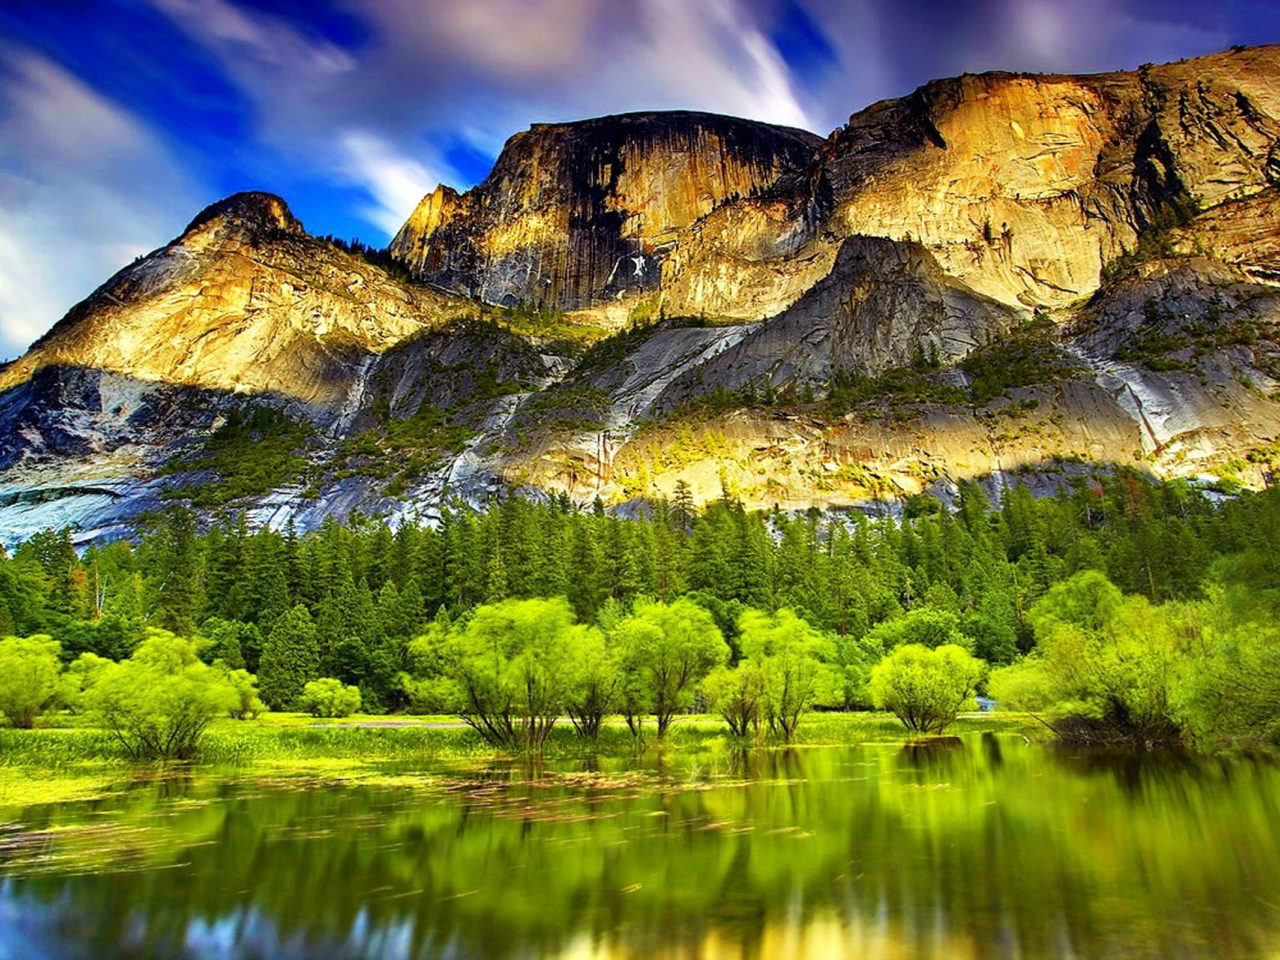 1366x768 Wallpapers Hd Cars Mountain Spring Lake Pine Forest 8753 Wallpapers13 Com